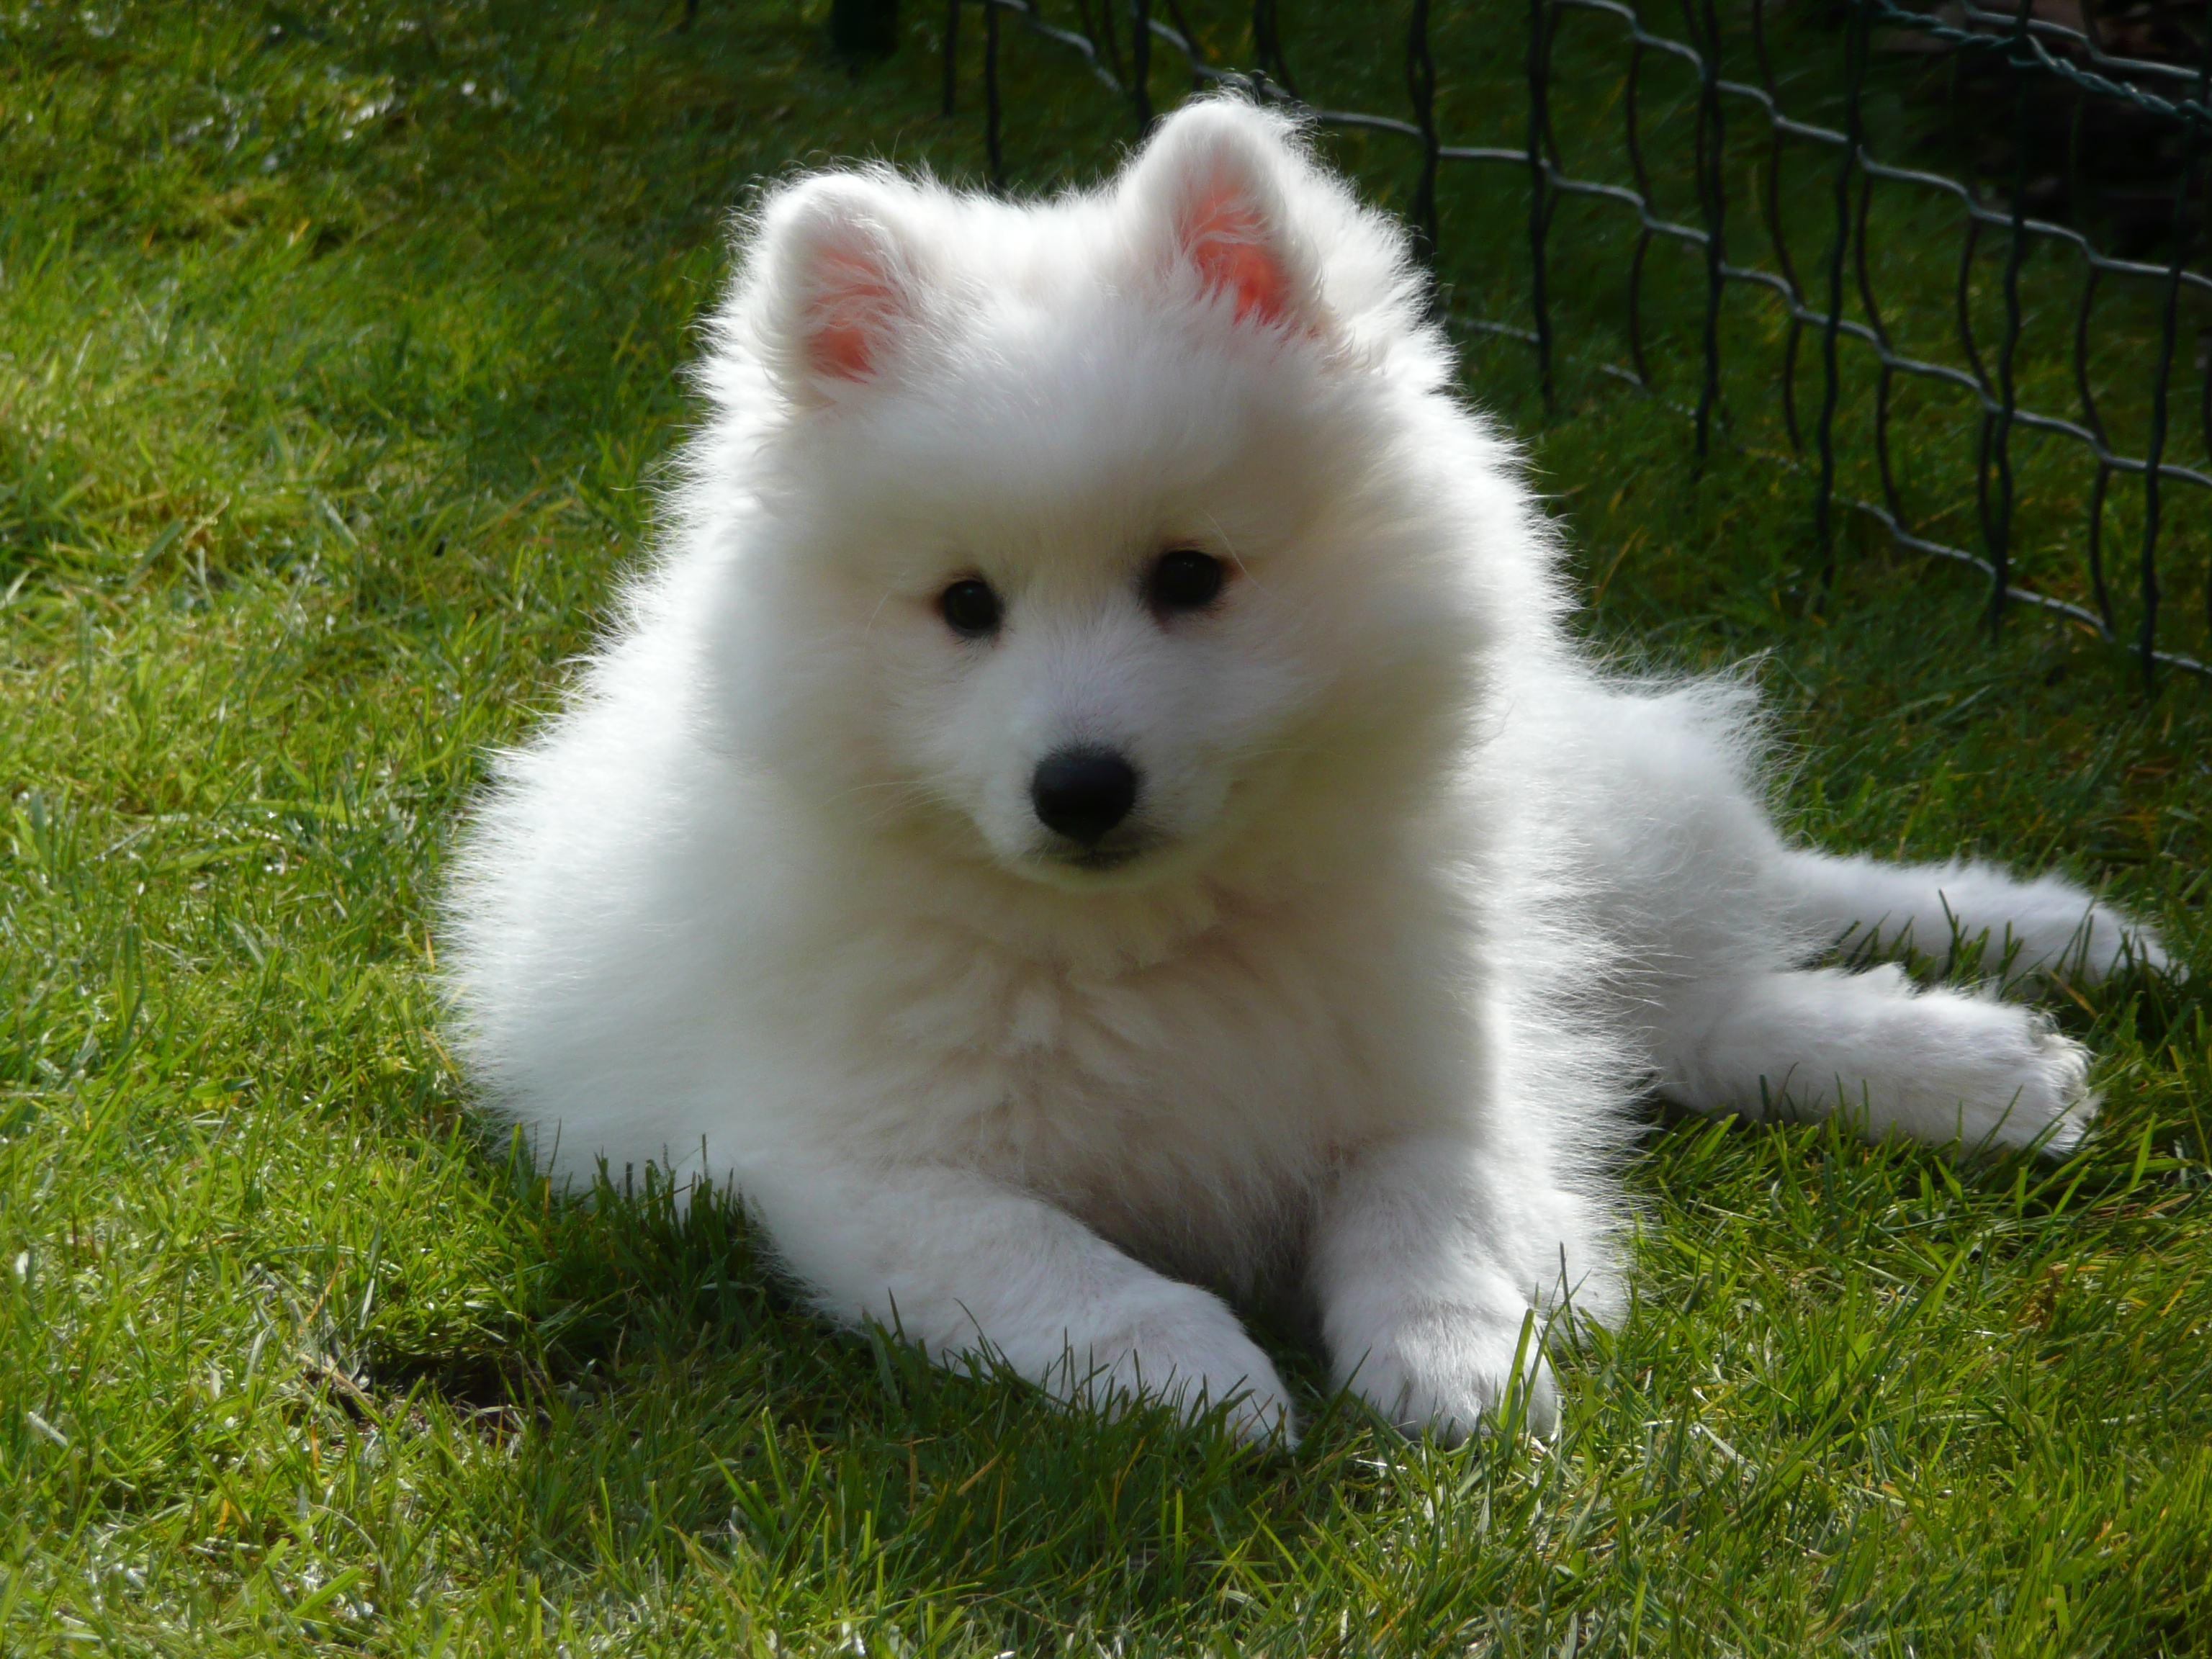 Spitz on the grass photo and wallpaper. Beautiful Japanese Spitz ...